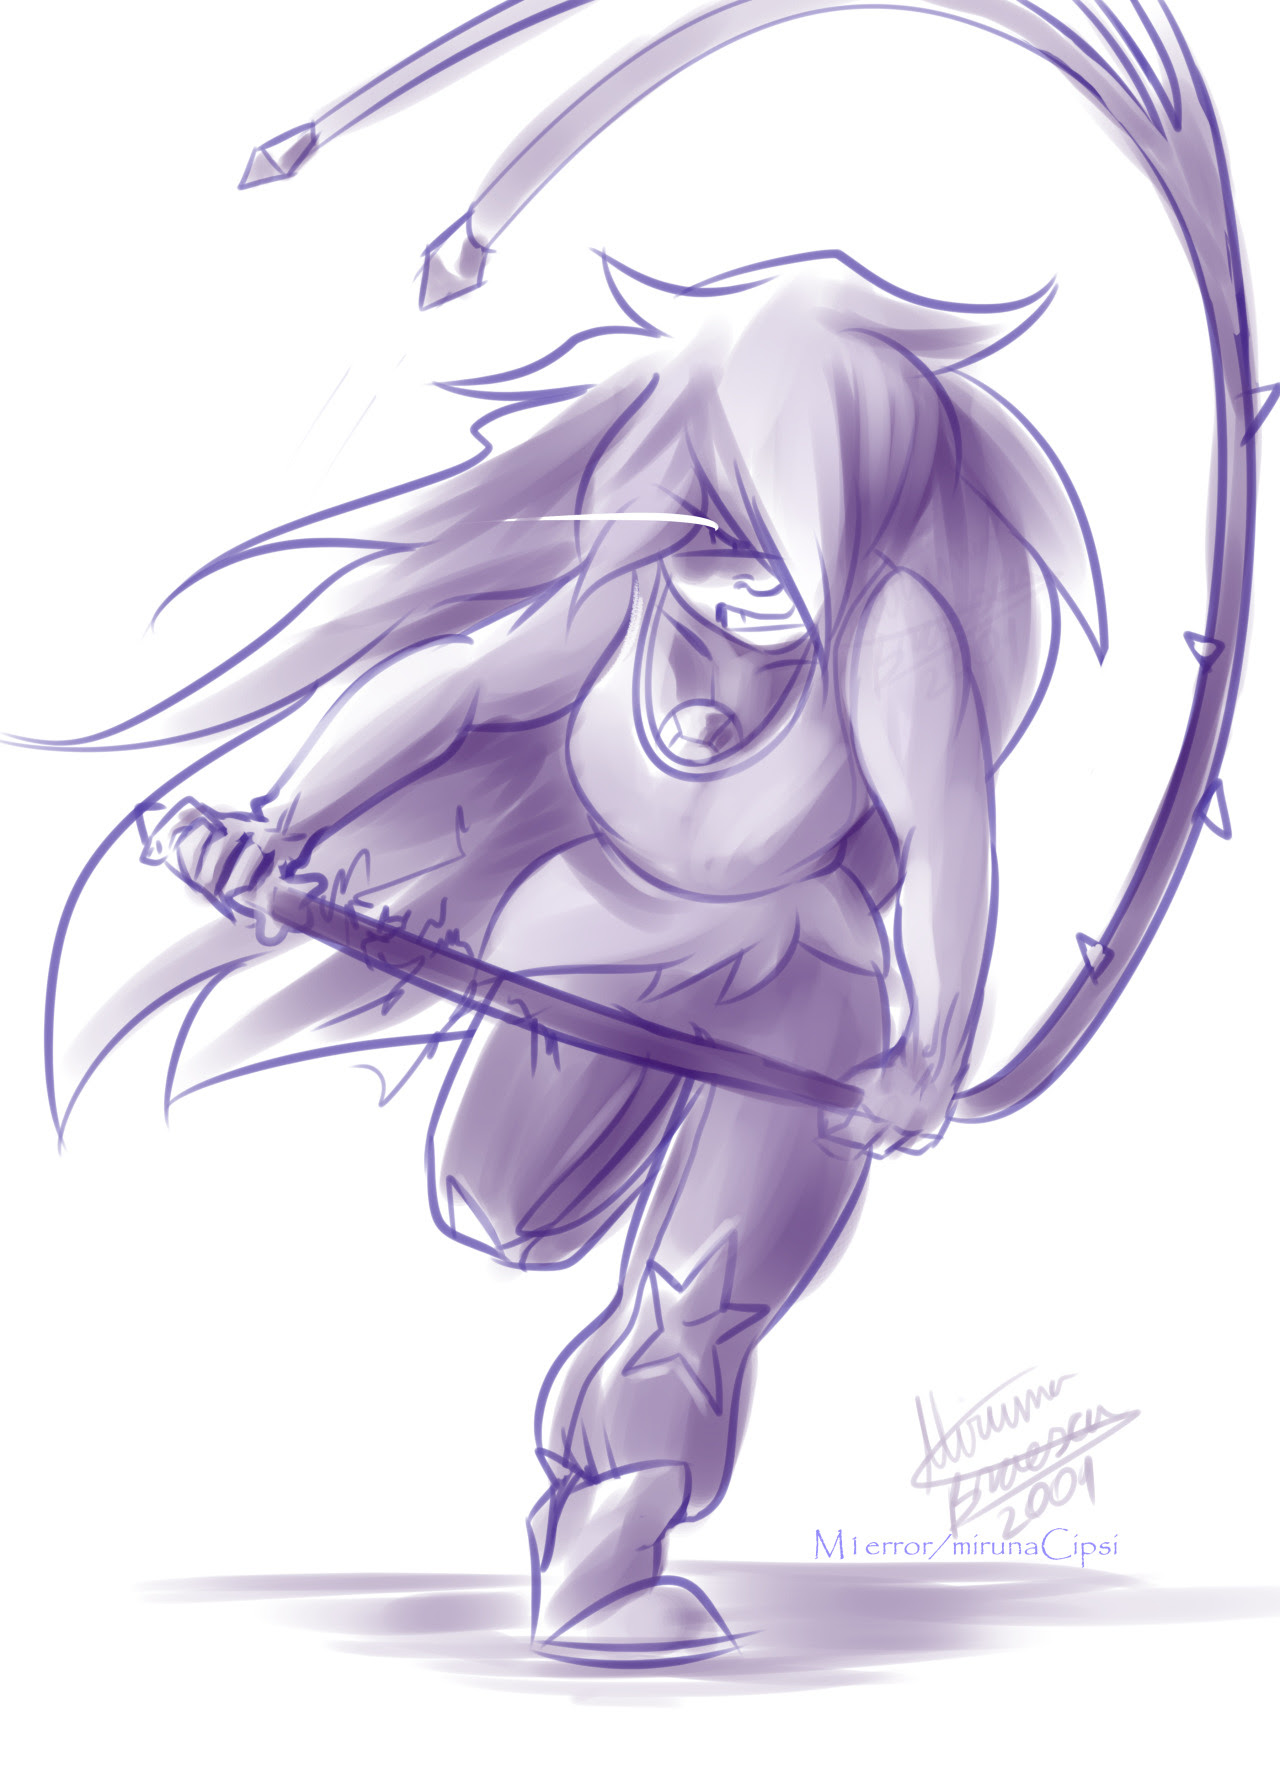 SO MUCH SU! I just love amethyst so much, I can't stop drawing her! I should be honest with you, I really hoped amethyst would kick the shit out of jasper after what she said…but I got a rather cool...